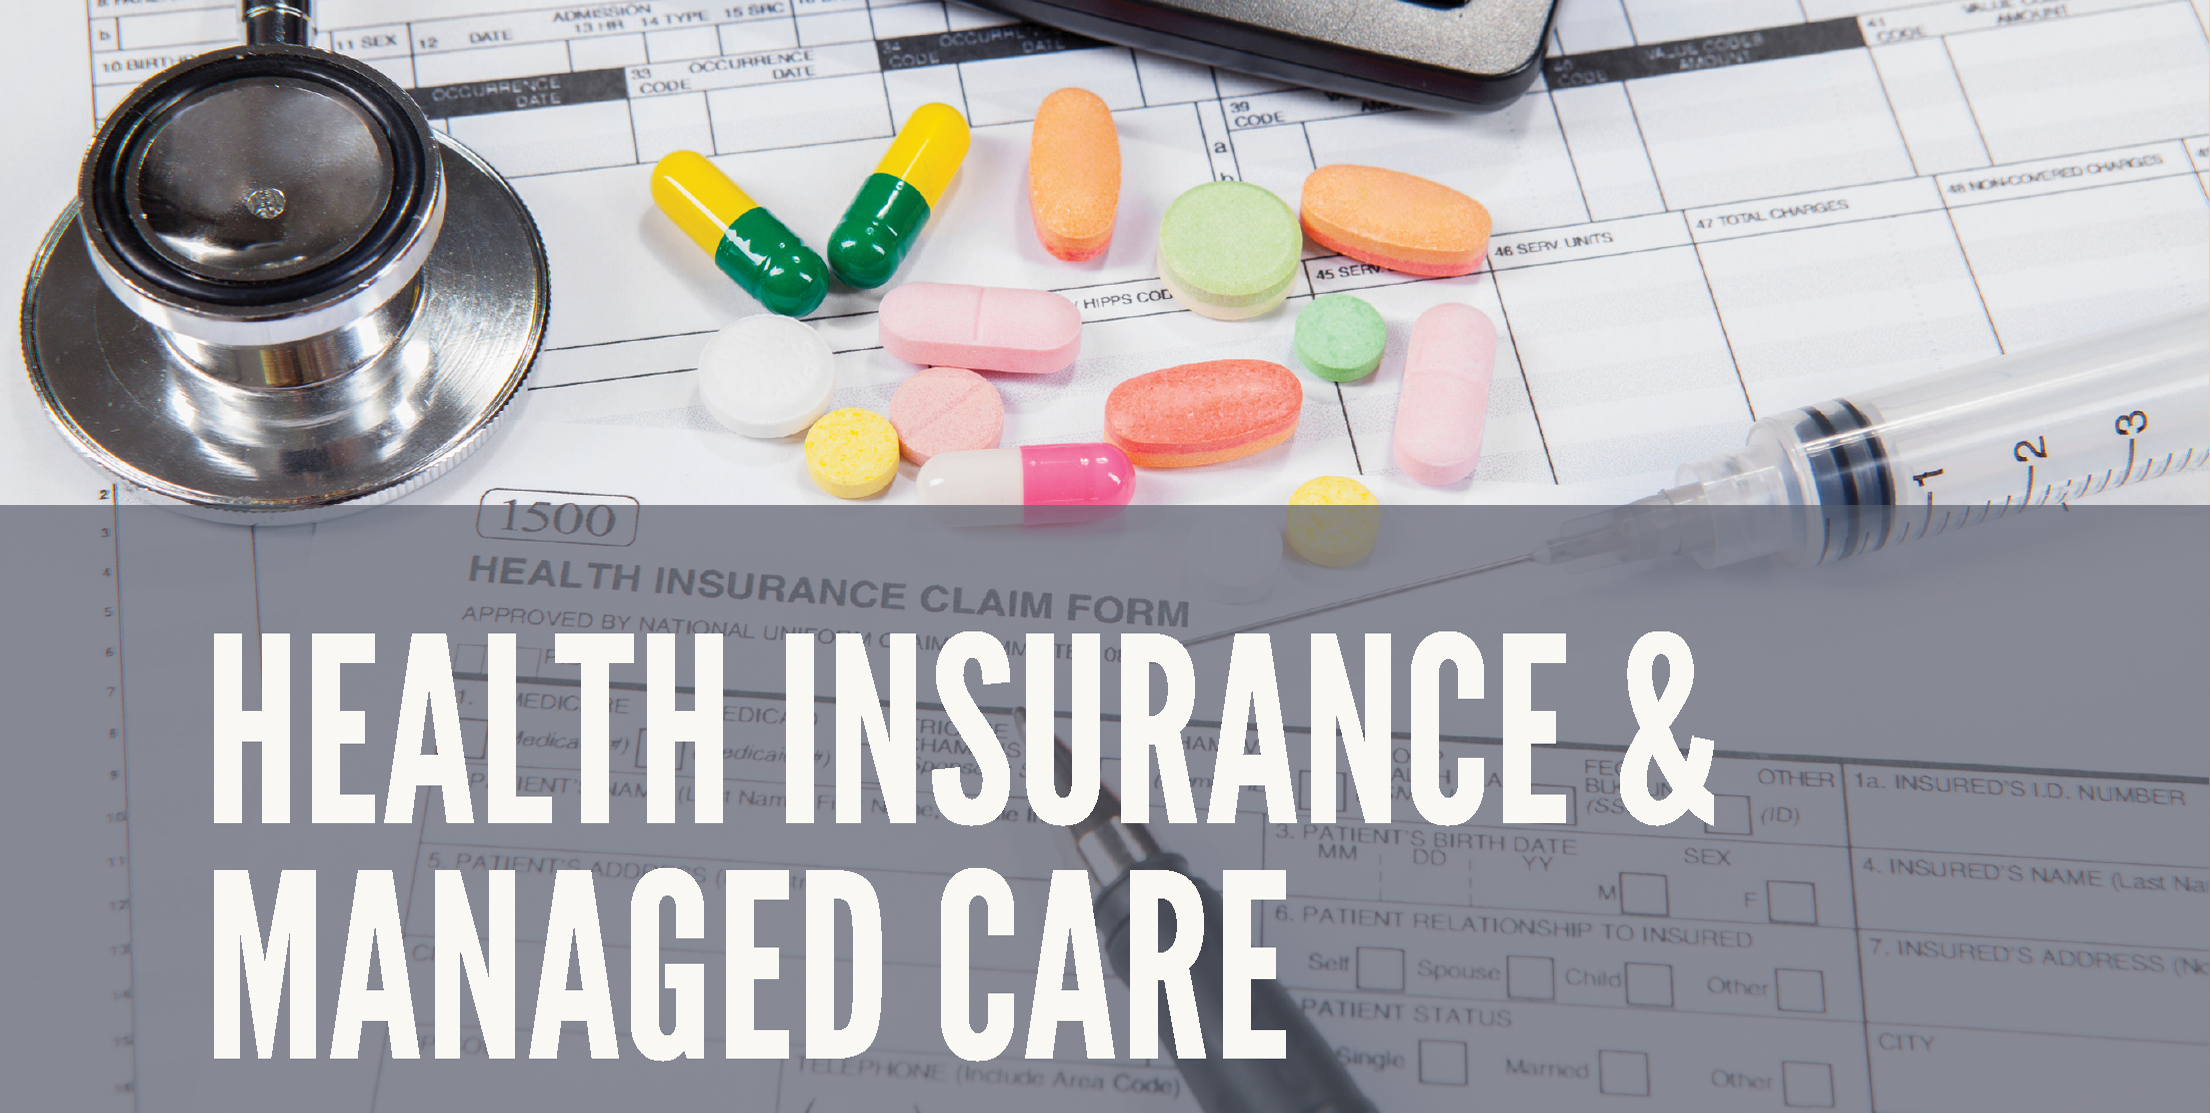 Health Insurance & Managed Care - This course presents an overview of major issues related to the design, function, management, regulation, and evaluation of health insurance and managed care plans. The course provides a firm foundation in basic concepts pertaining to private and public sector health insurance/benefit plans, both as provided by employers and government agencies such as Medicaid and Medicare. Key topics include population care management techniques, provider payment, organizational integration, quality and accountability, cost-containment, and public policy. The course makes extensive use of outside experts. It is relevant for management- or policy-oriented students who will be working in, or interrelating with, public and private (both for-profit and not-for-profit) health insurance plans and organized delivery systems such as HMOs and hospital/physician